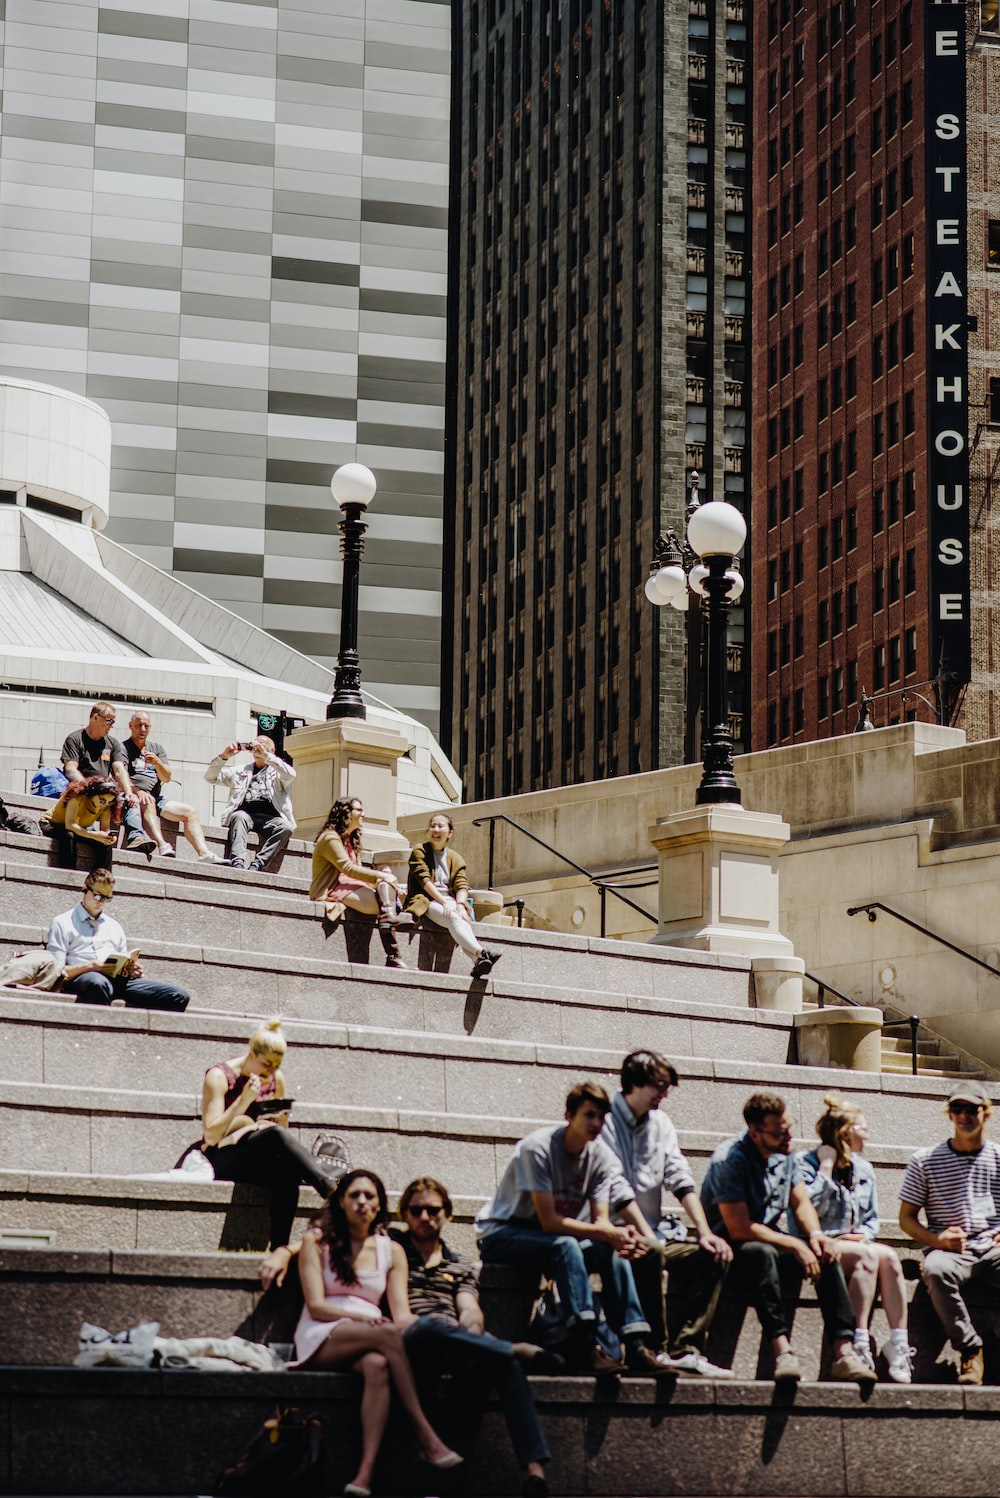 people sitting on white concrete bench during daytime